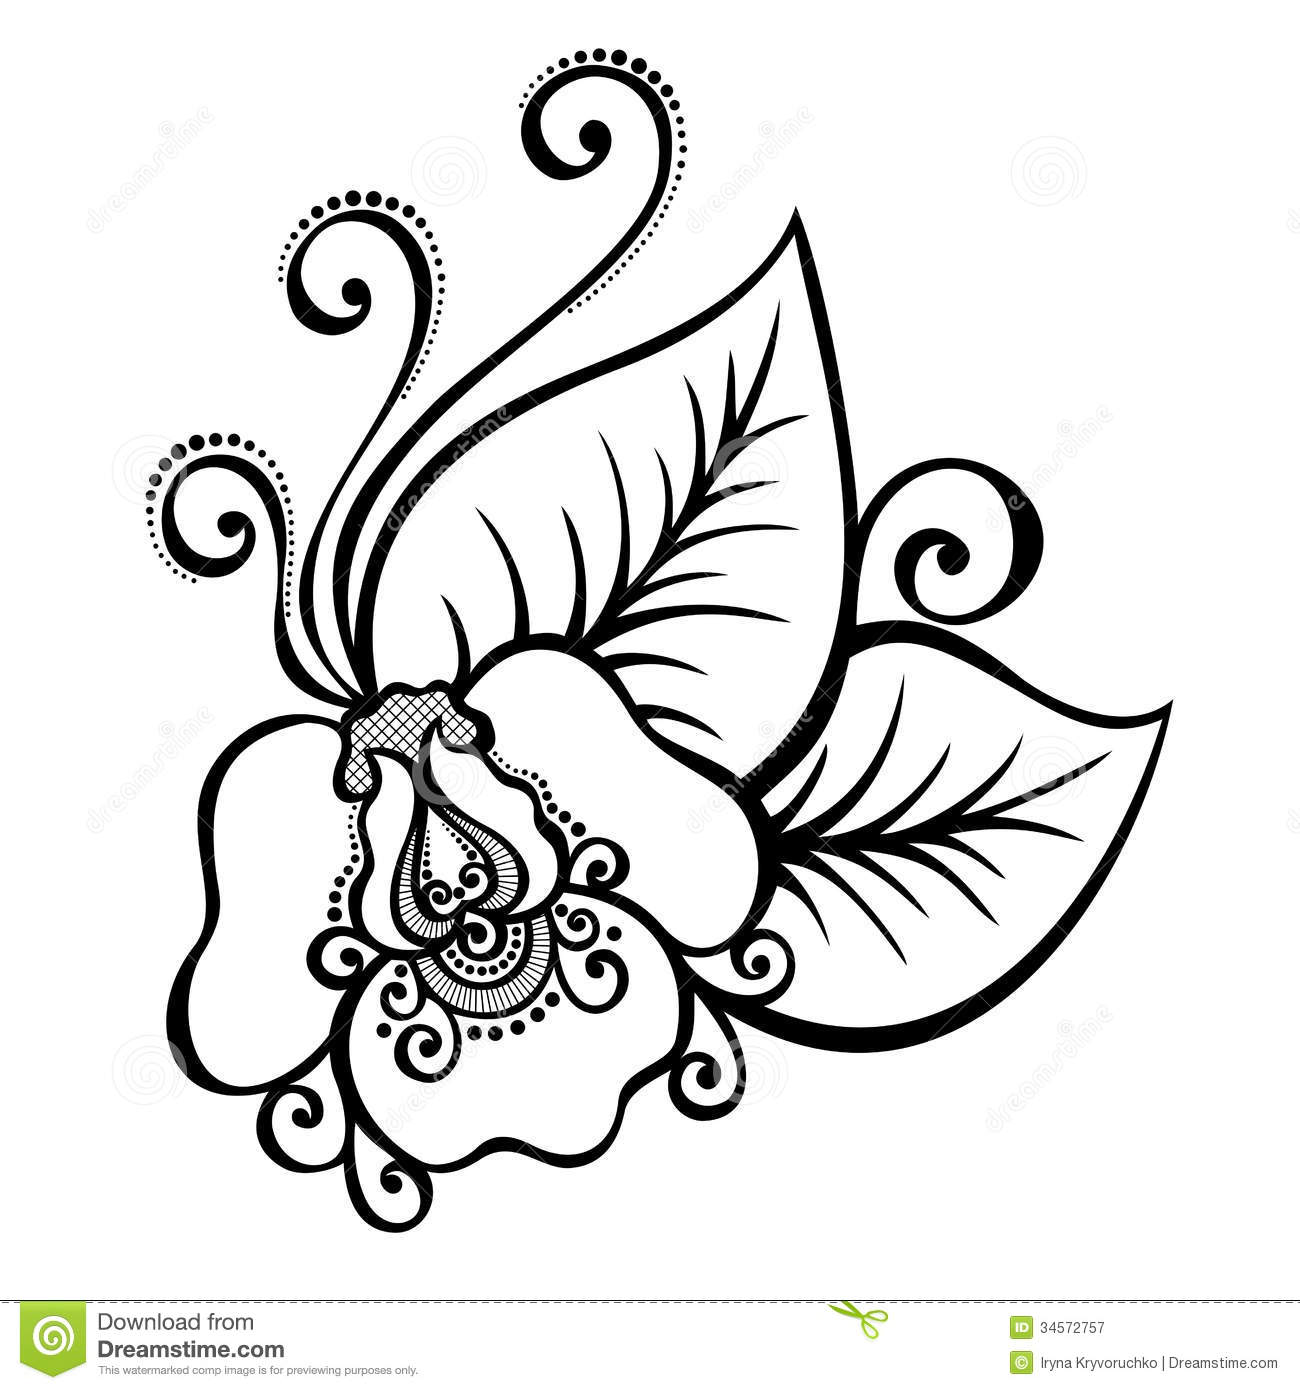 Decorative Flower With Leaves Royalty Free Stock